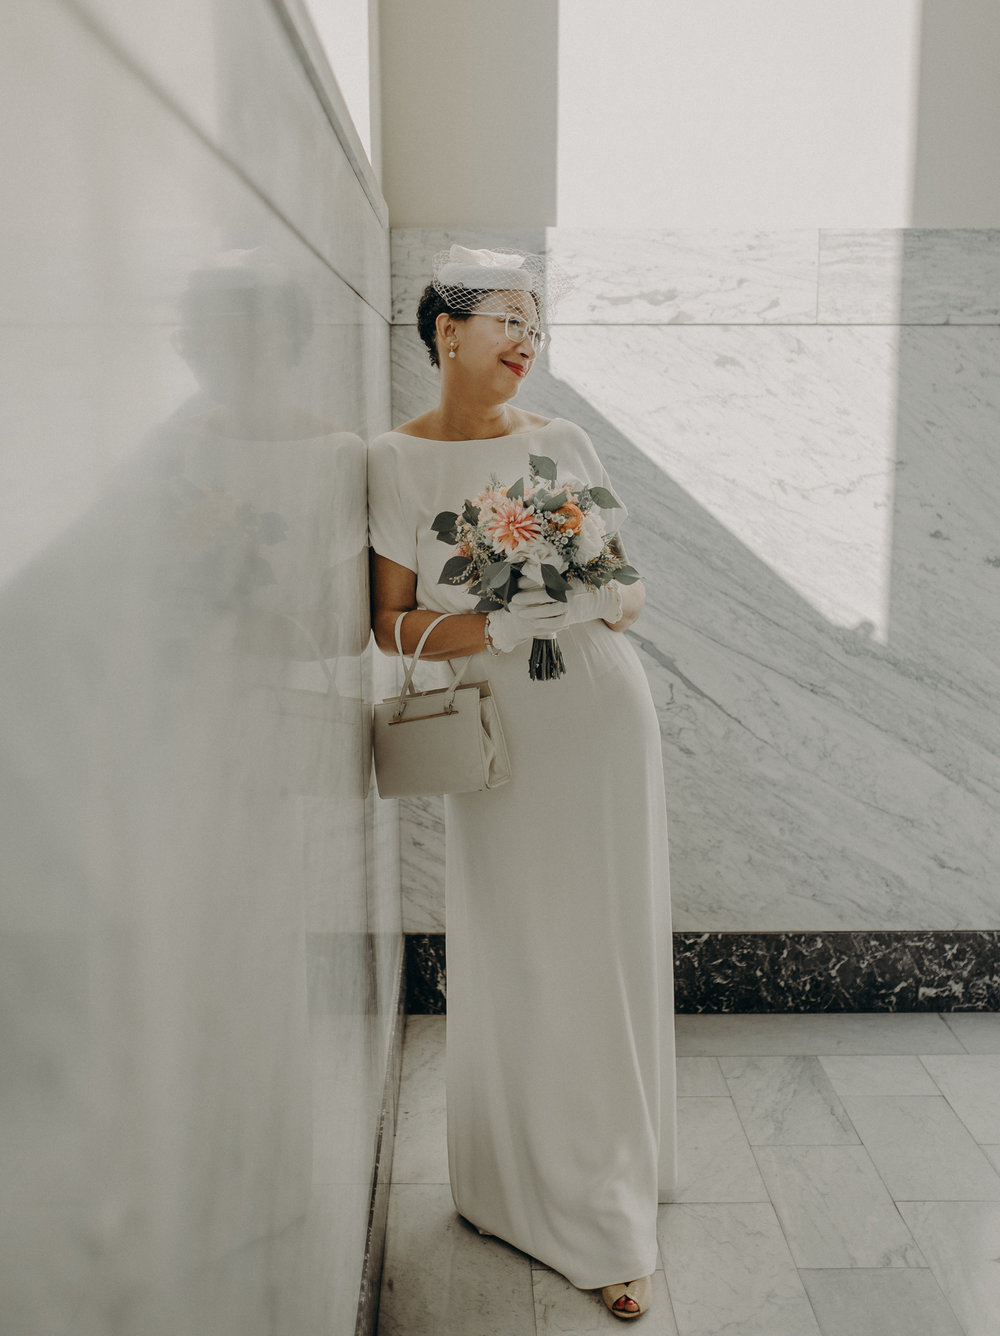 Los Angeles Wedding Photographer - Portland Elopement Photographer - IsaiahAndTaylor.com-027.jpg